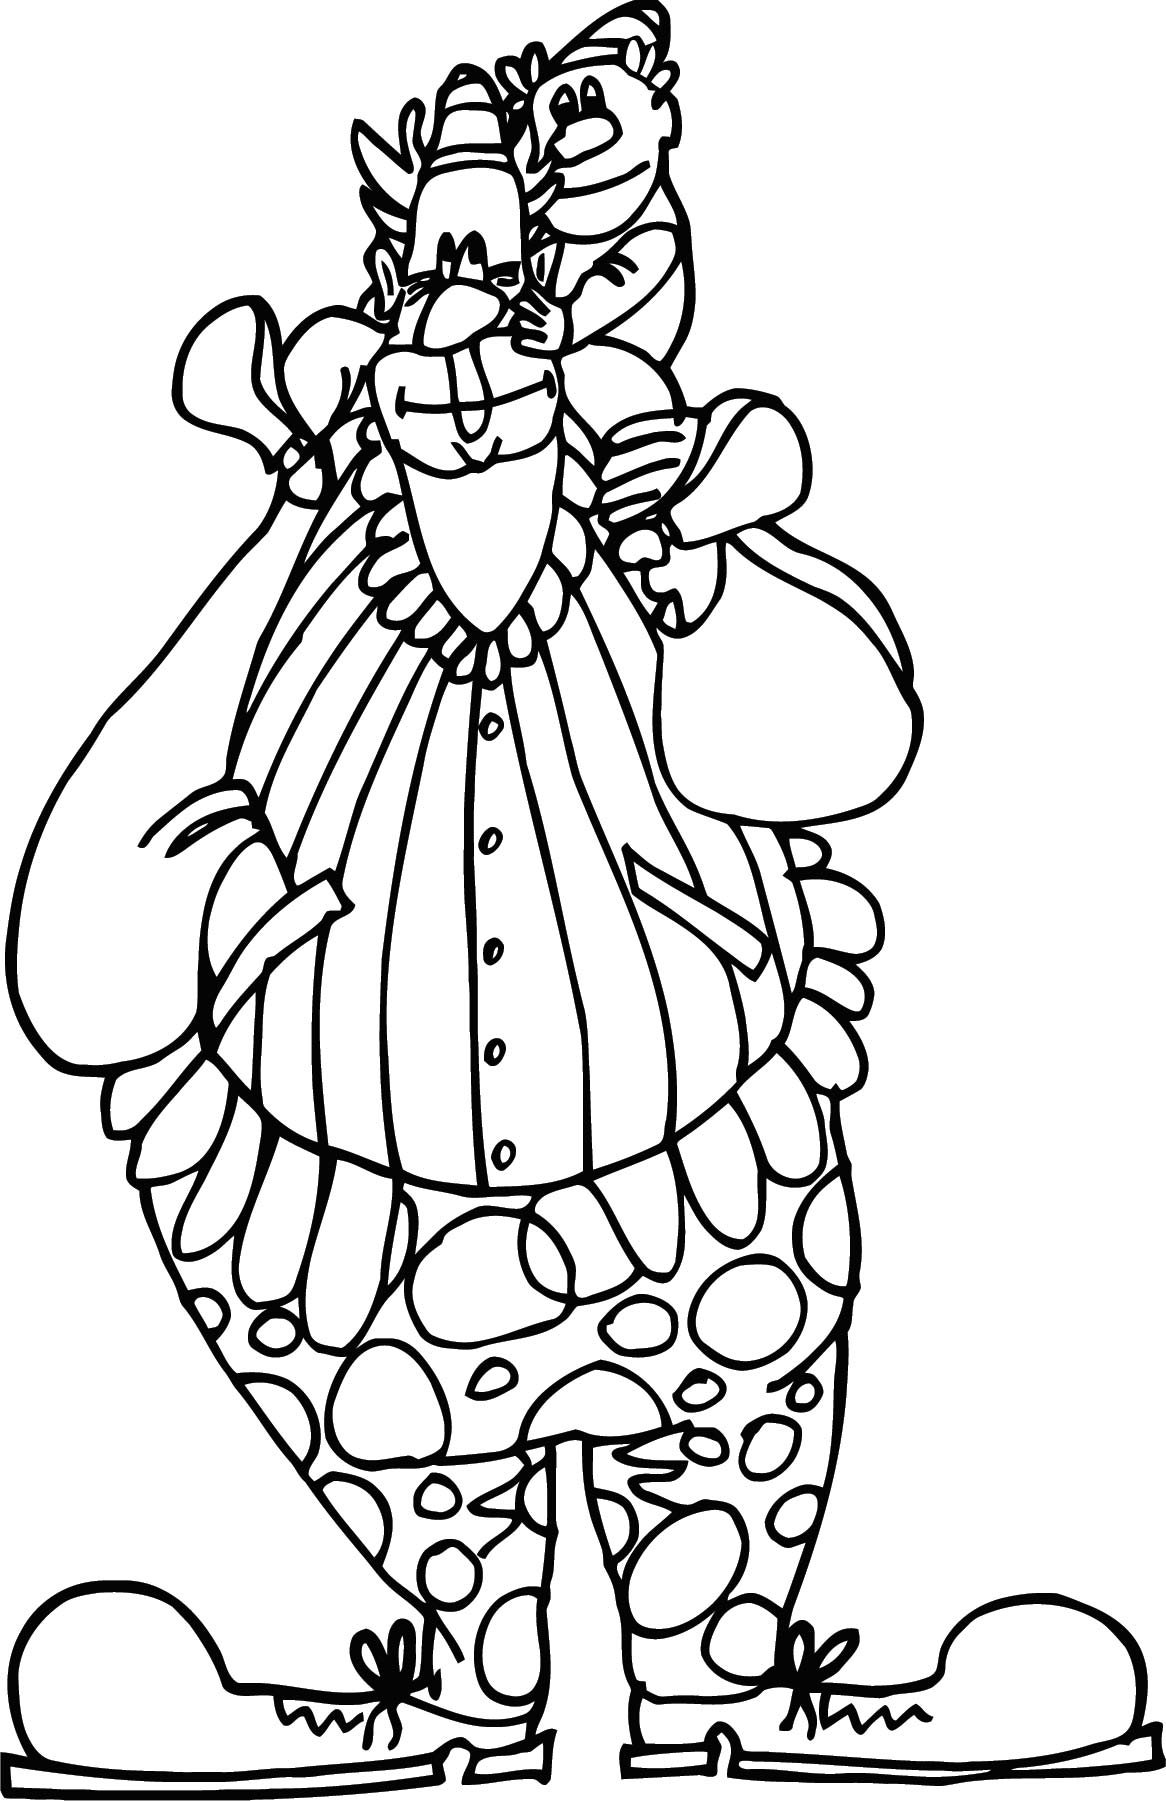 Clown Coloring Page WeColoringPage 106